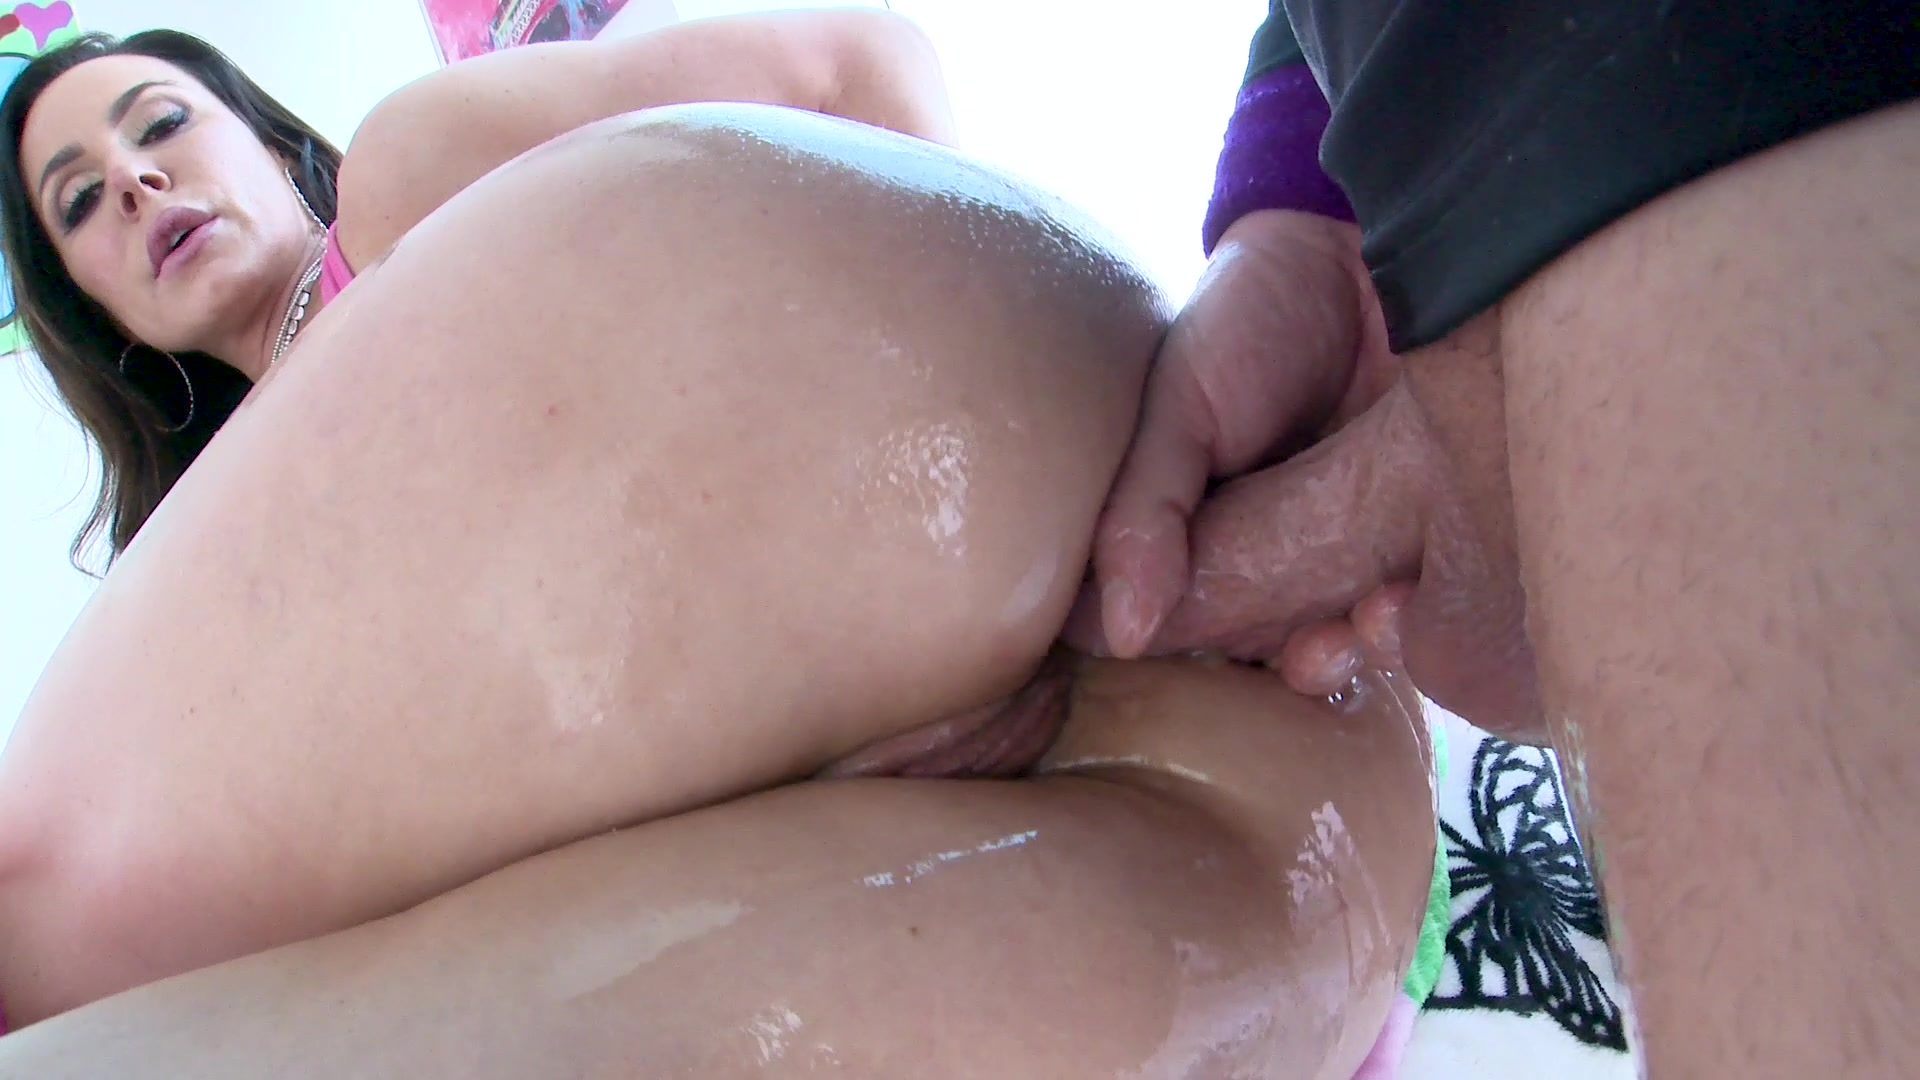 Trailere Ægte Anal All Stars Porn Movie Adult DVD Empire-1268